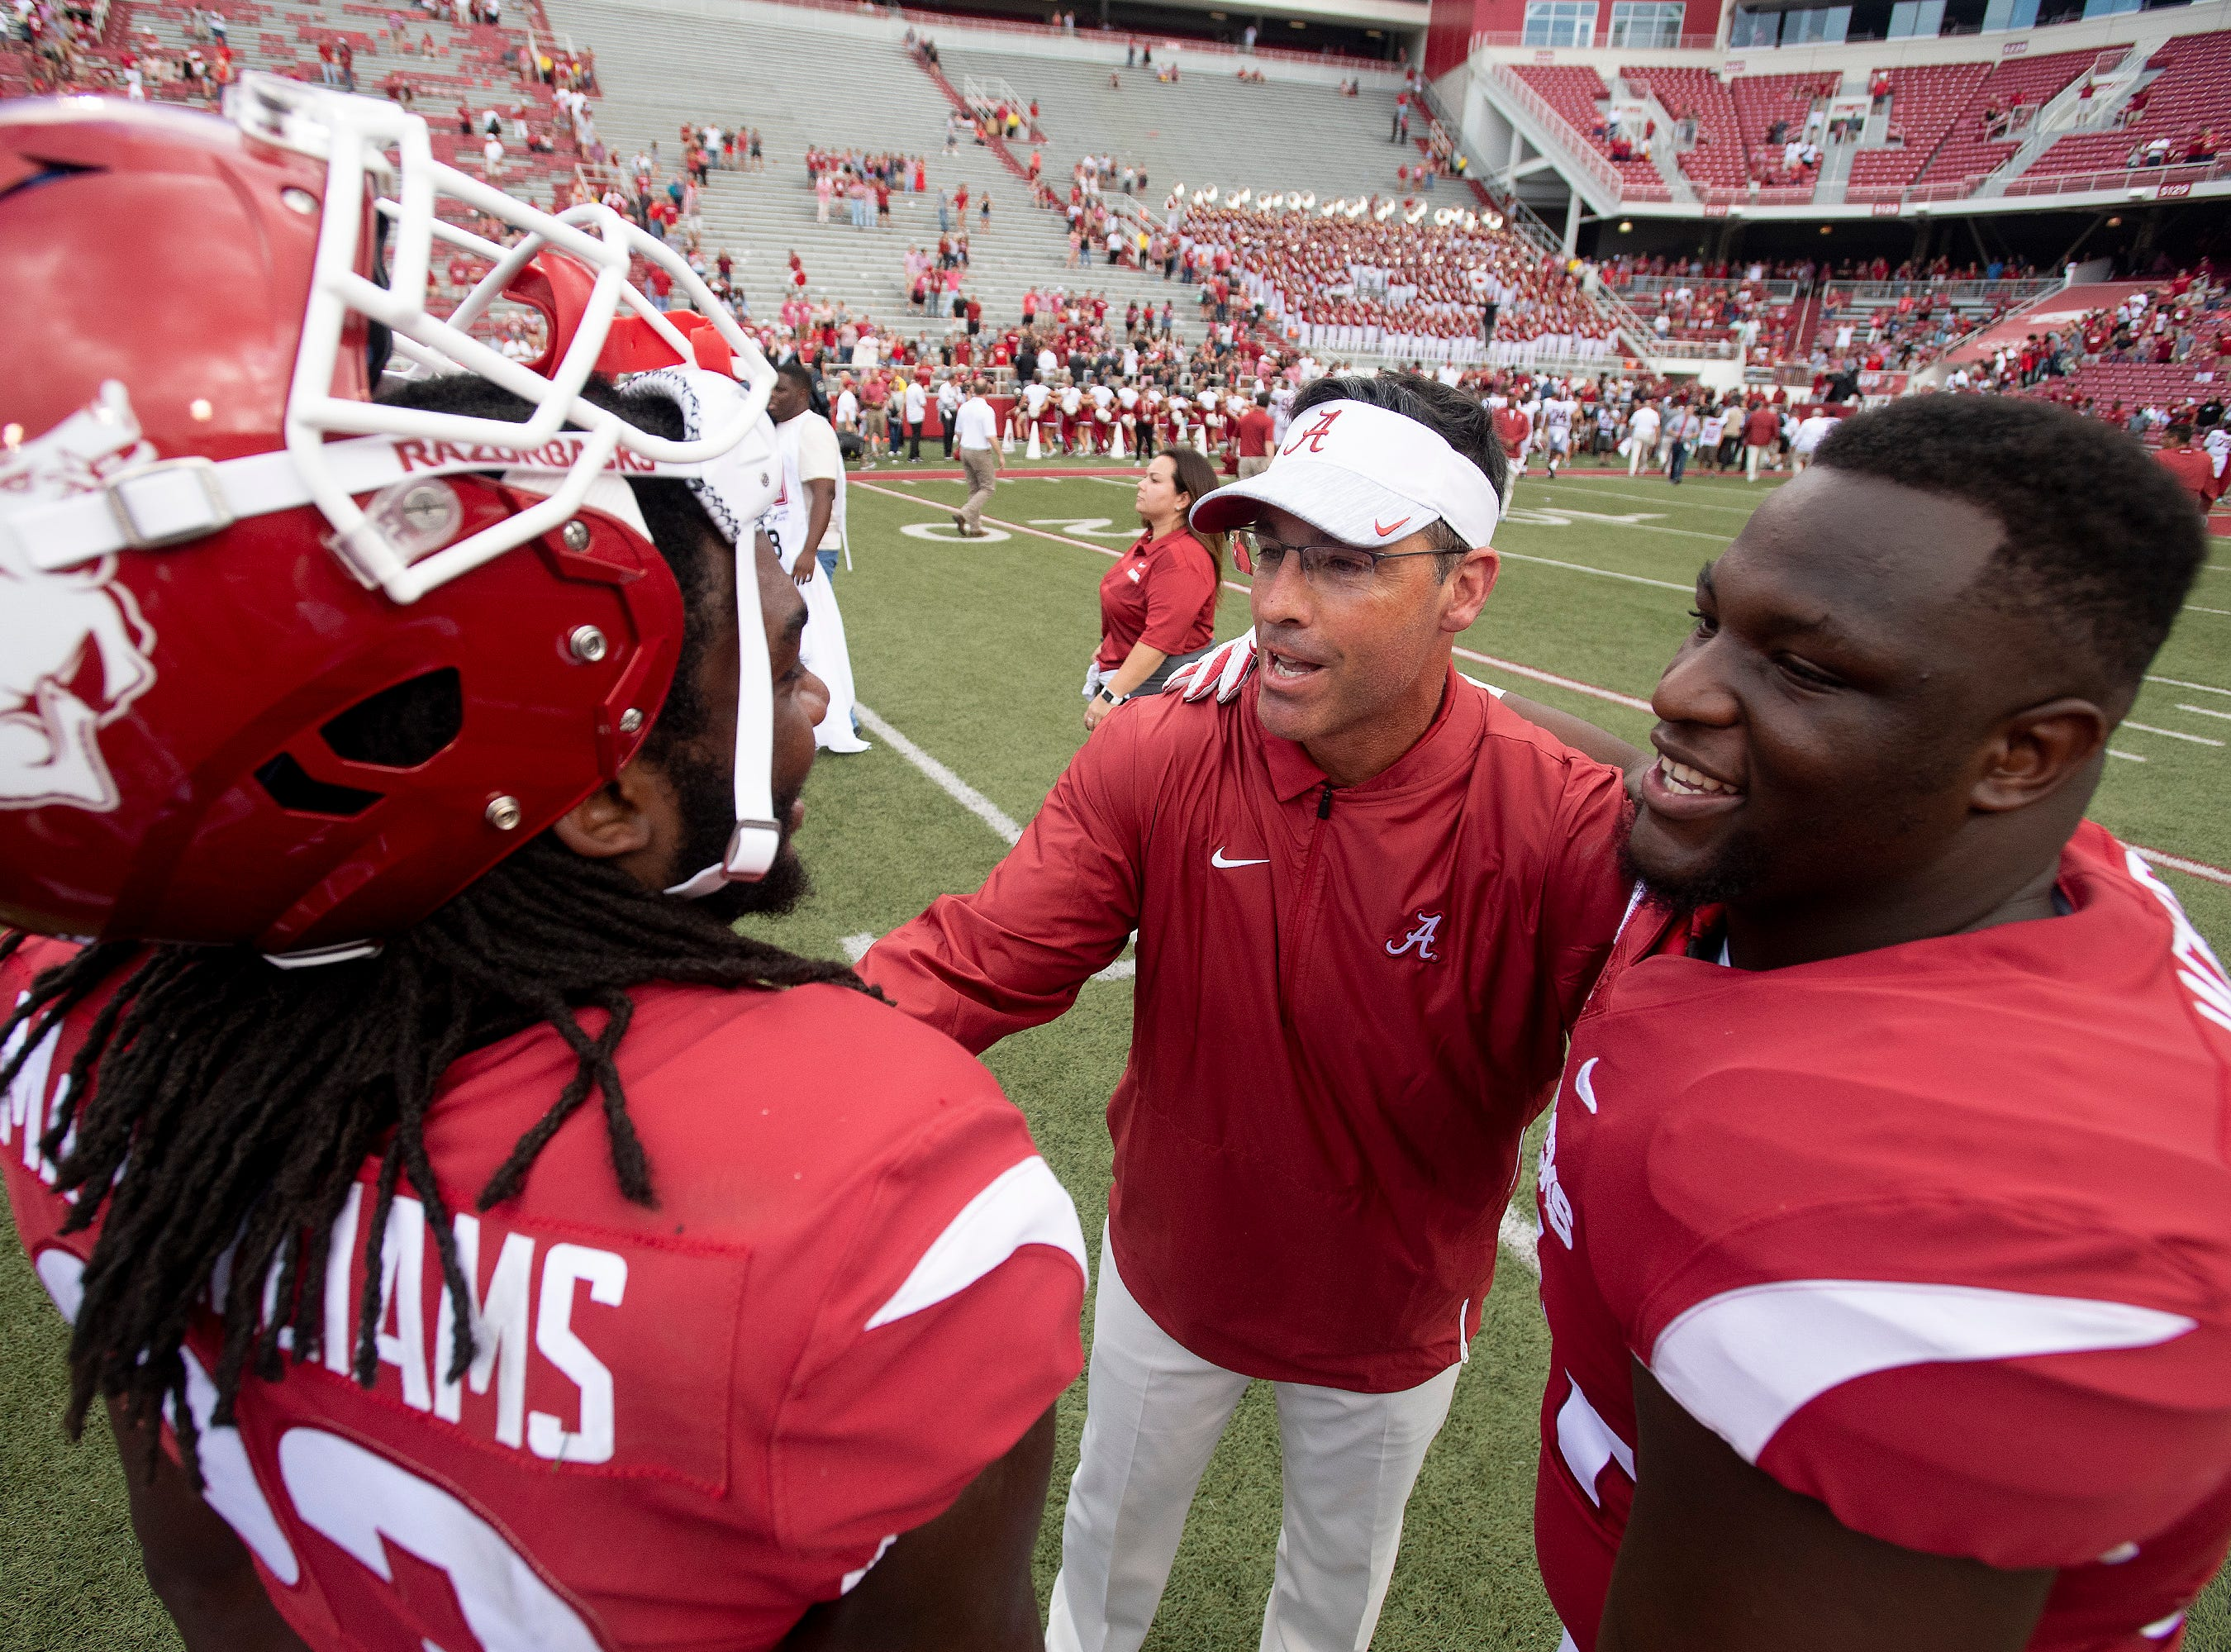 Alabama quarterbacks coach Dan Enos greets Arkansas players after the game in Fayetteville, Ark., on Saturday October 6, 2018.